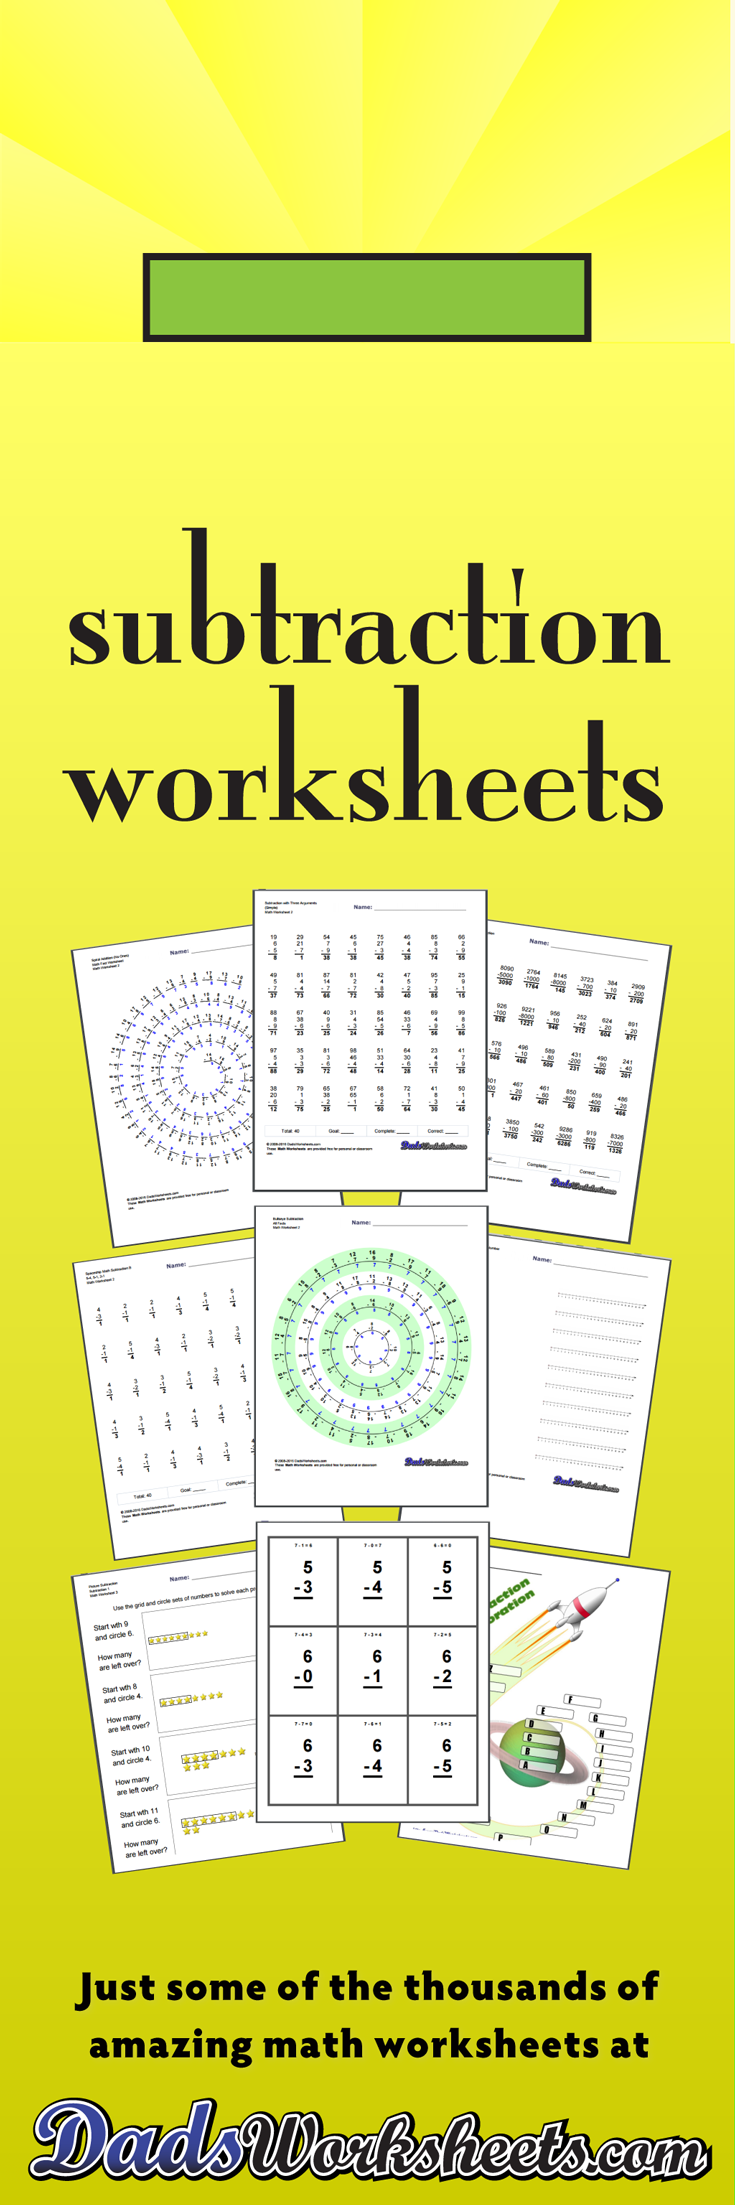 464 Subtraction Worksheets for You to Print Right Now – Multi Digit Subtraction Worksheets